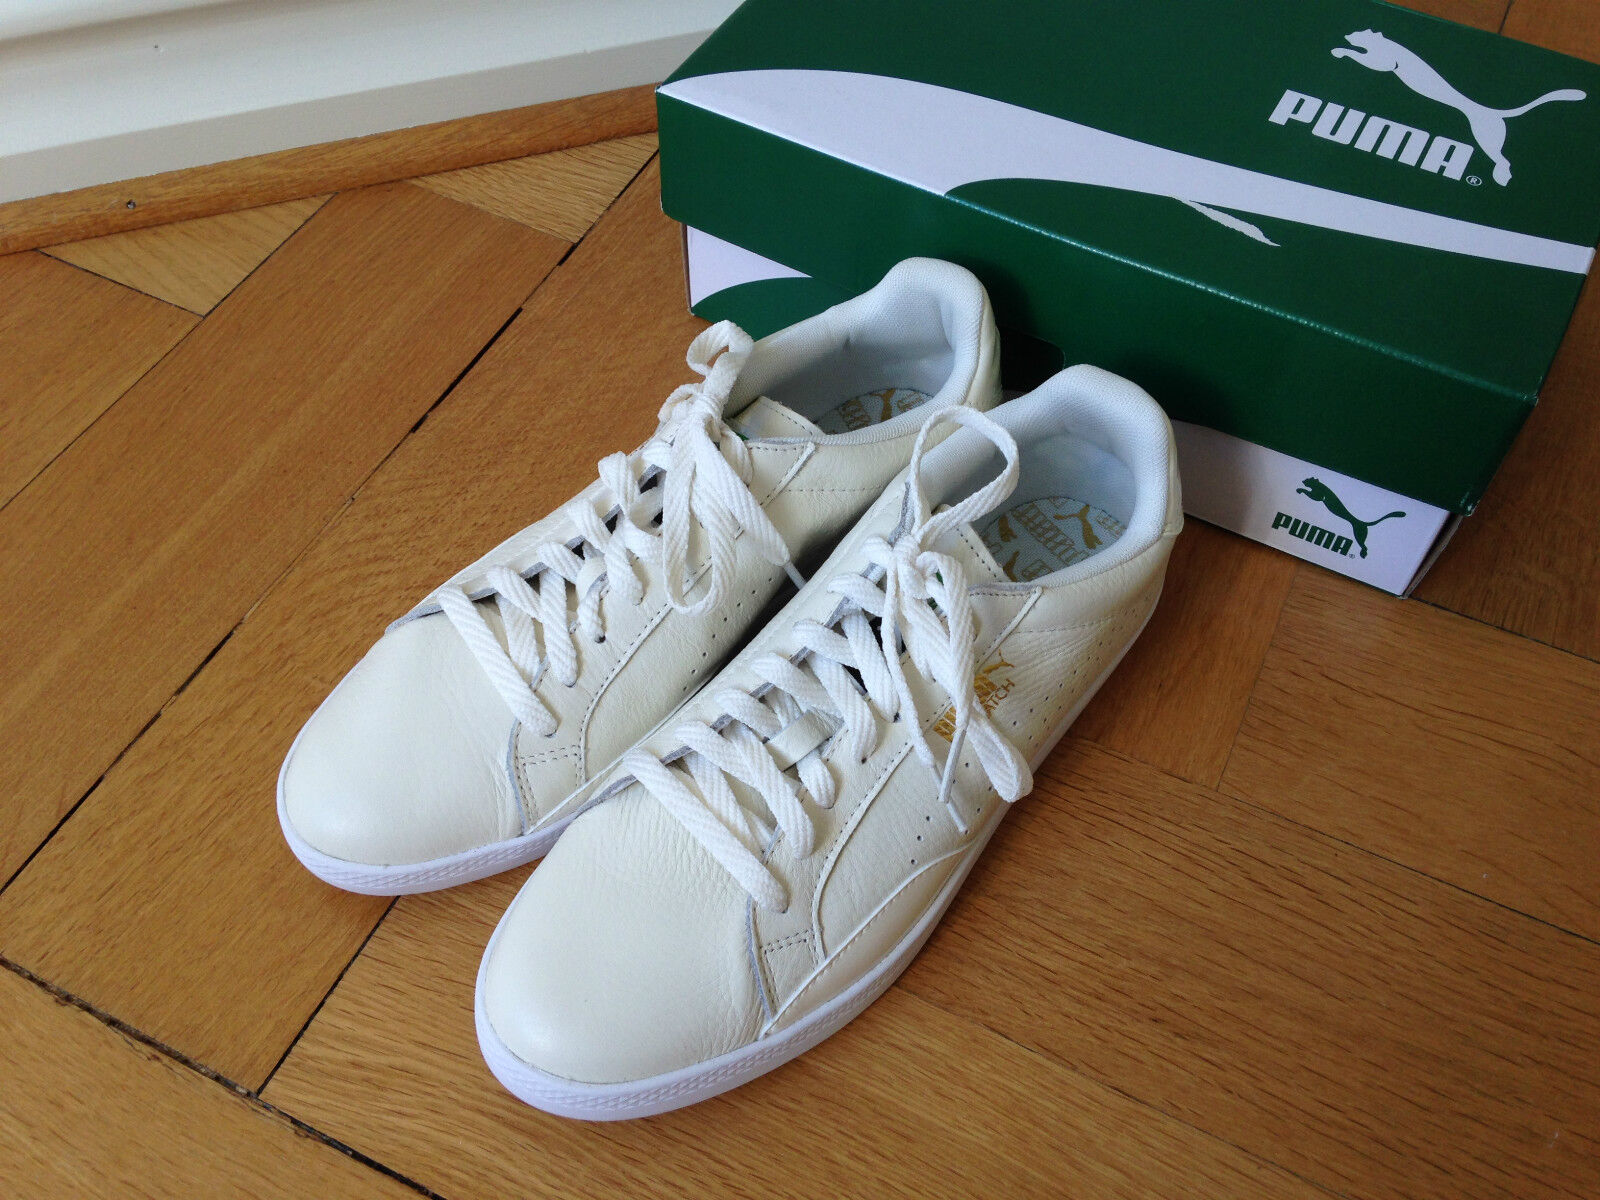 PUMA SNEAKERS MATCH LO, MARSHMALLOW-WHITE, GR. 39, NEU MIT OVP, DER KLASSIKER! Comfortable and good-looking